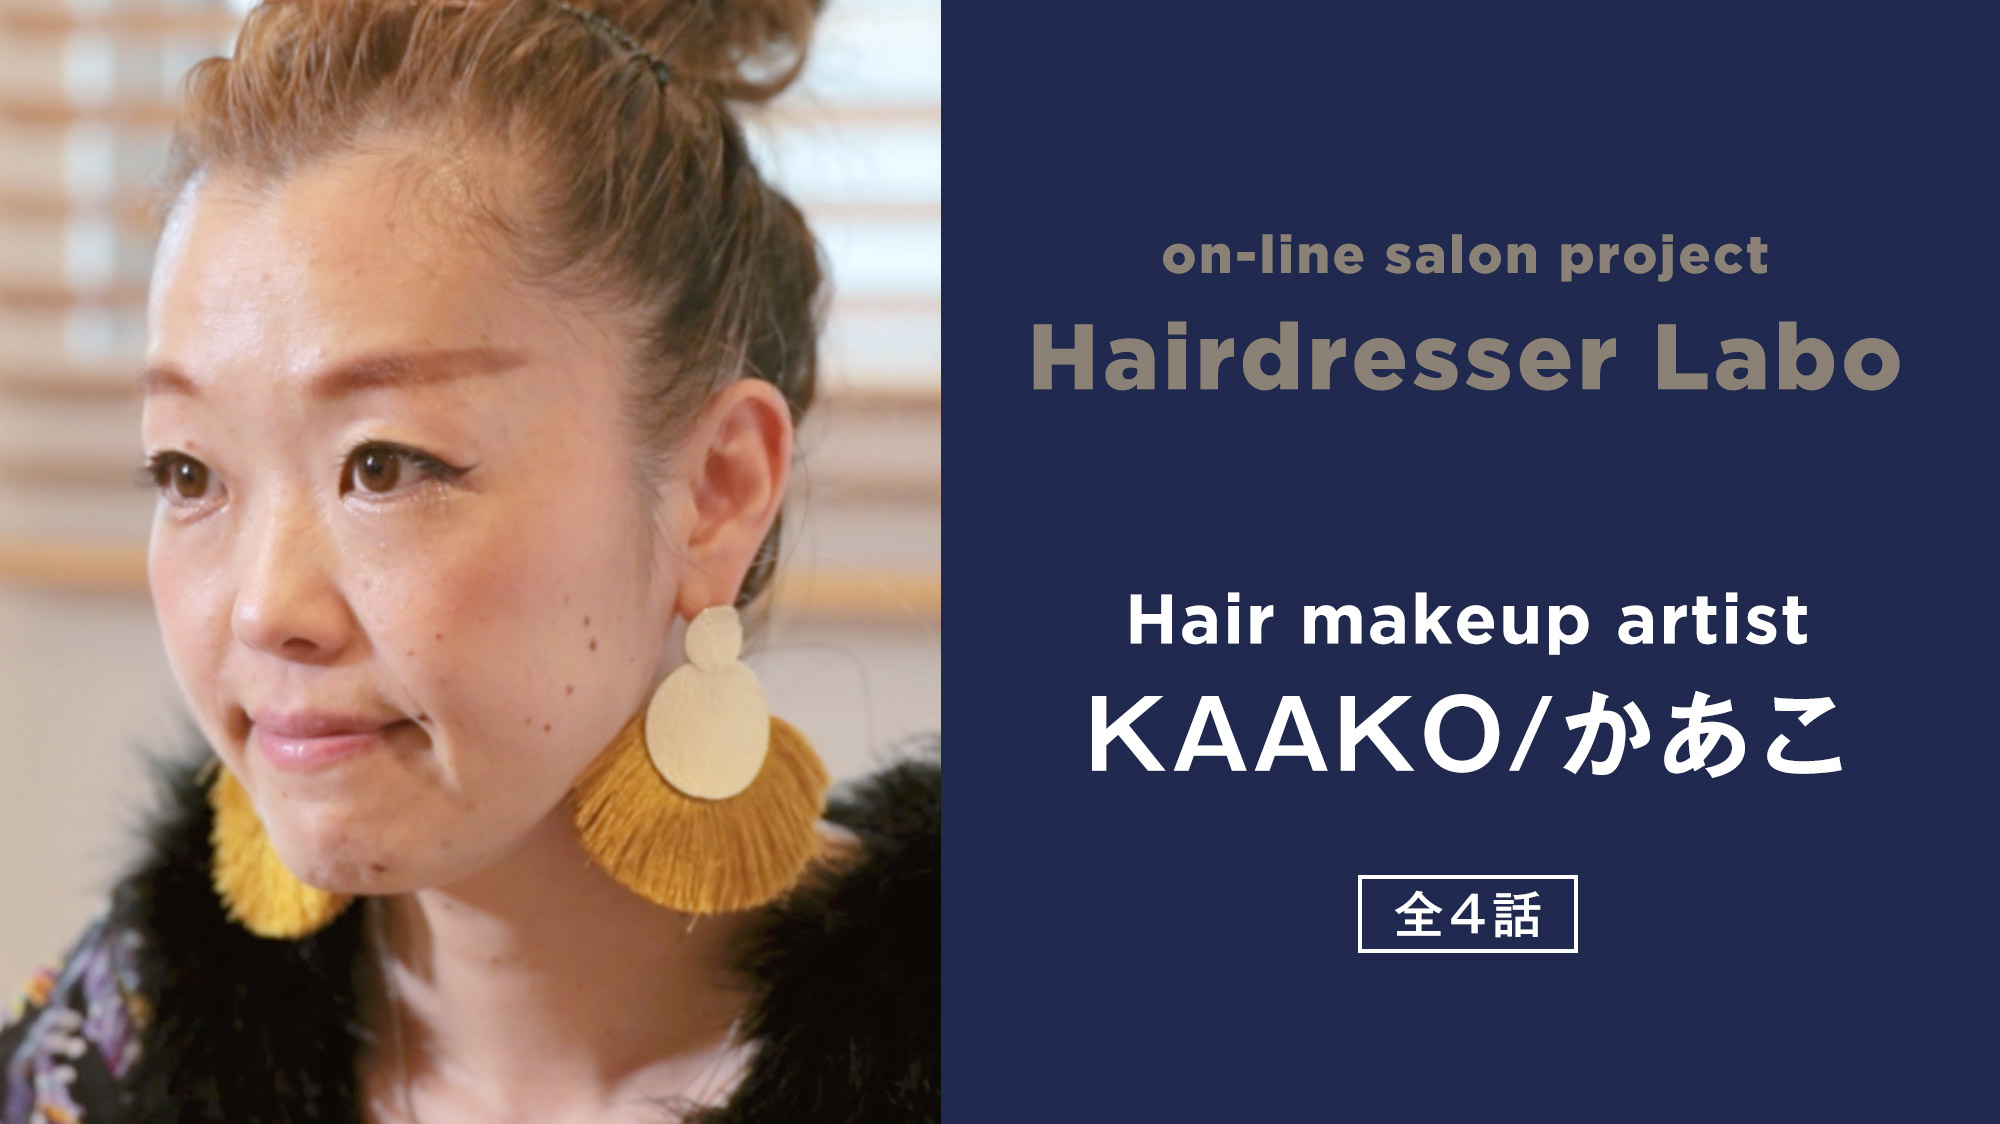 on-line salon project Hairdresser Labo『KAAKO/かあこ』 全4話